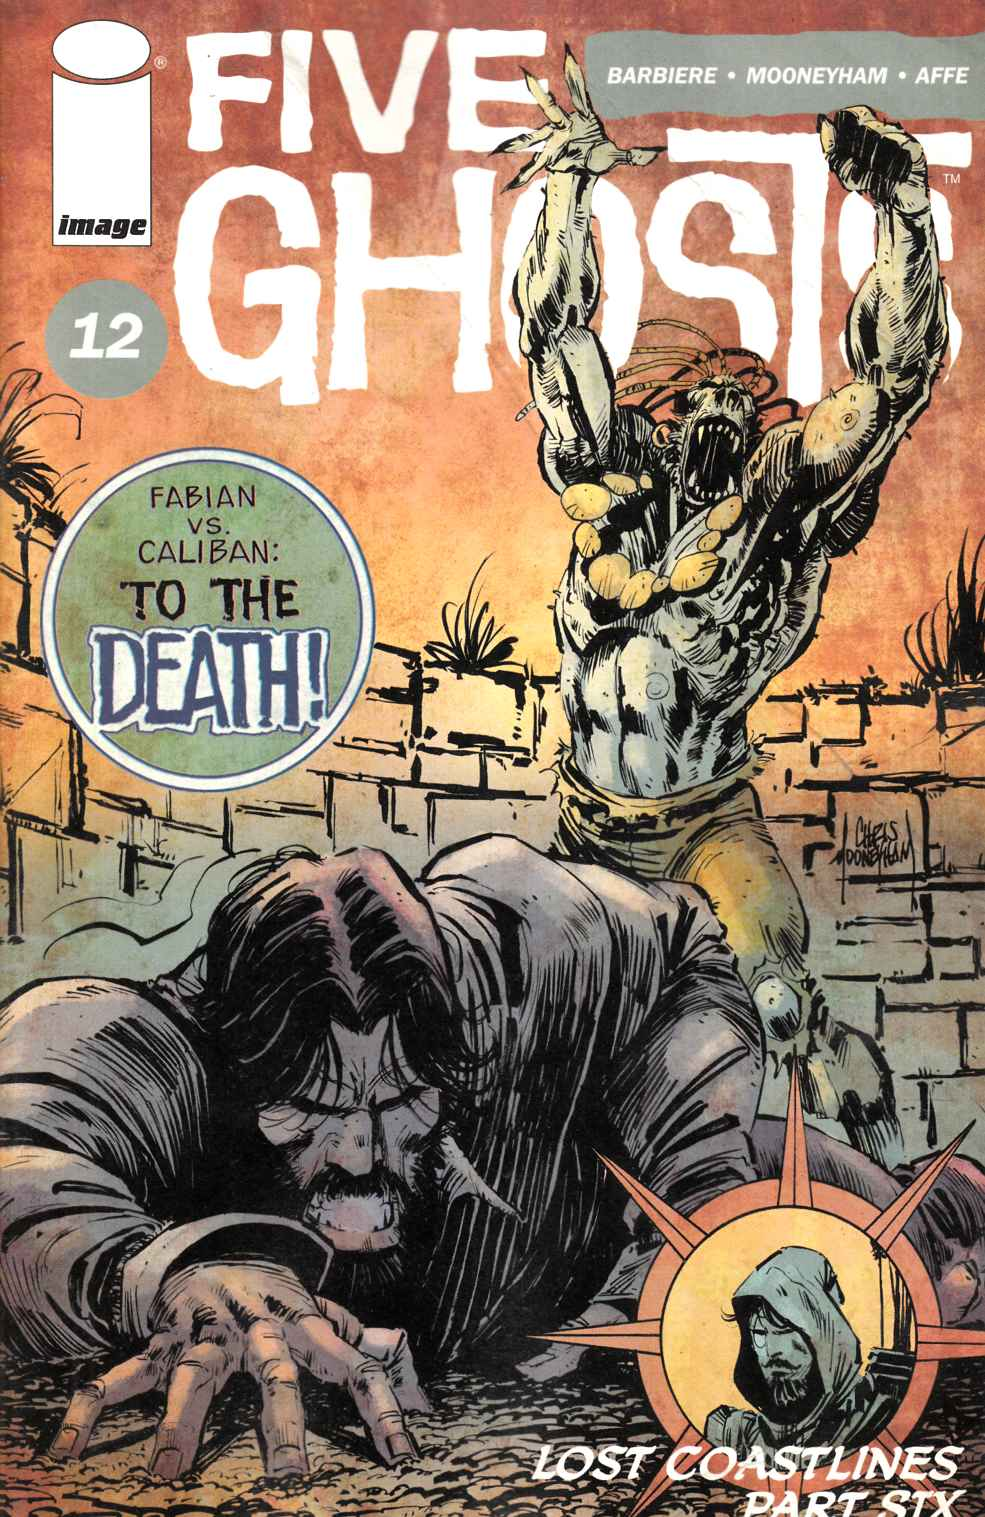 Five Ghosts #12 [Image Comic] THUMBNAIL